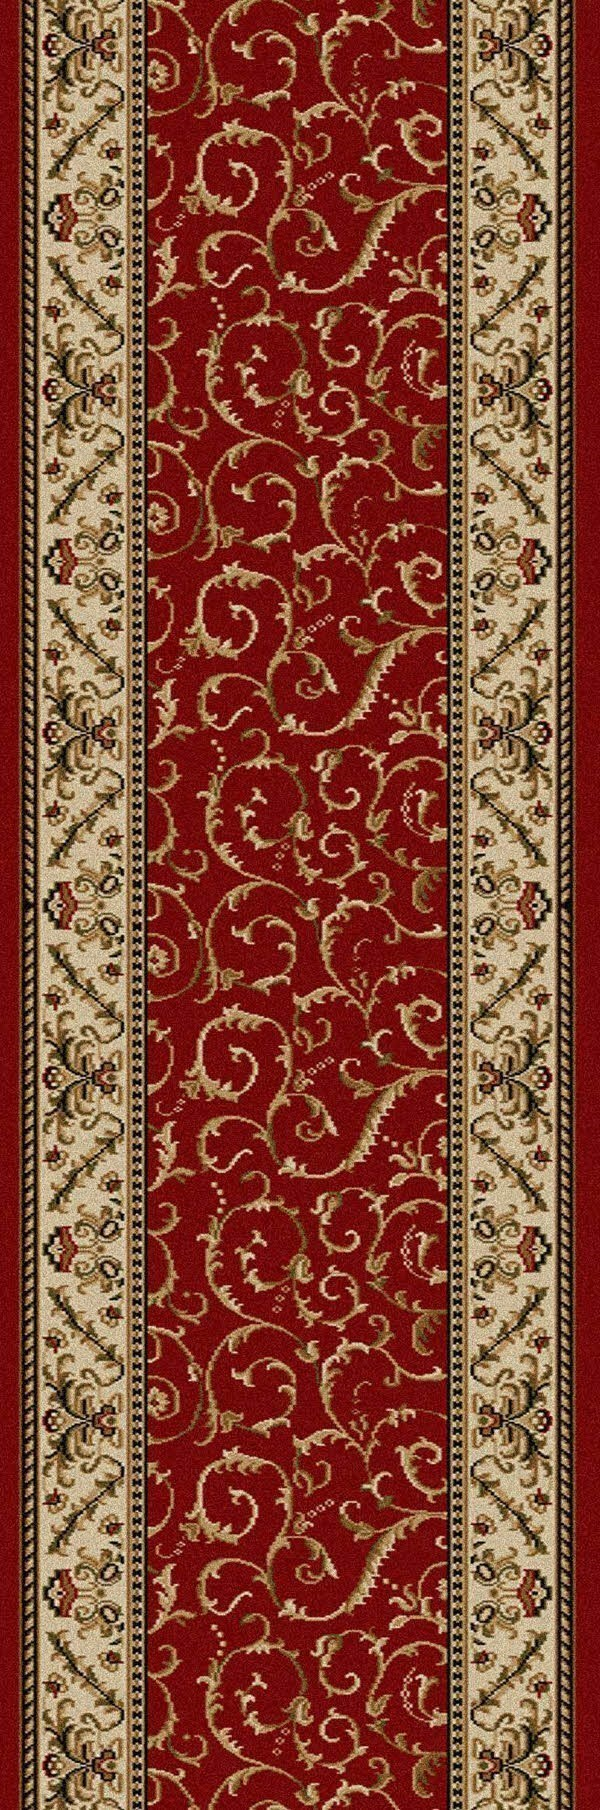 Rugs Direct Cagliari Scroll Rugs Rugs Direct